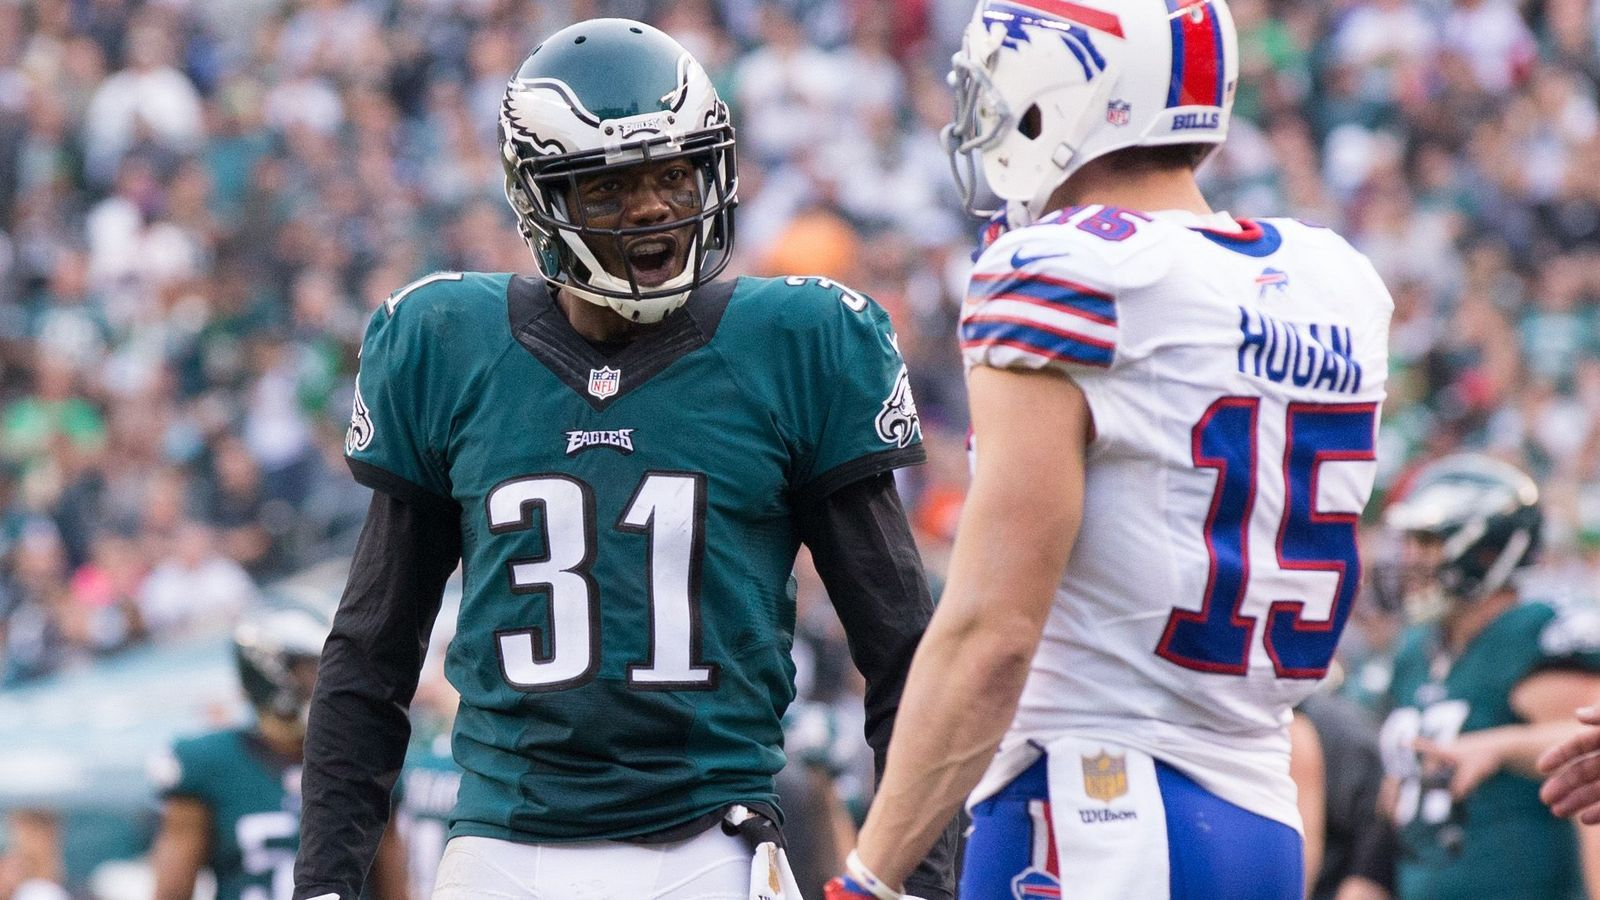 Eagles Injury Report: Byron Maxwell returns to practice